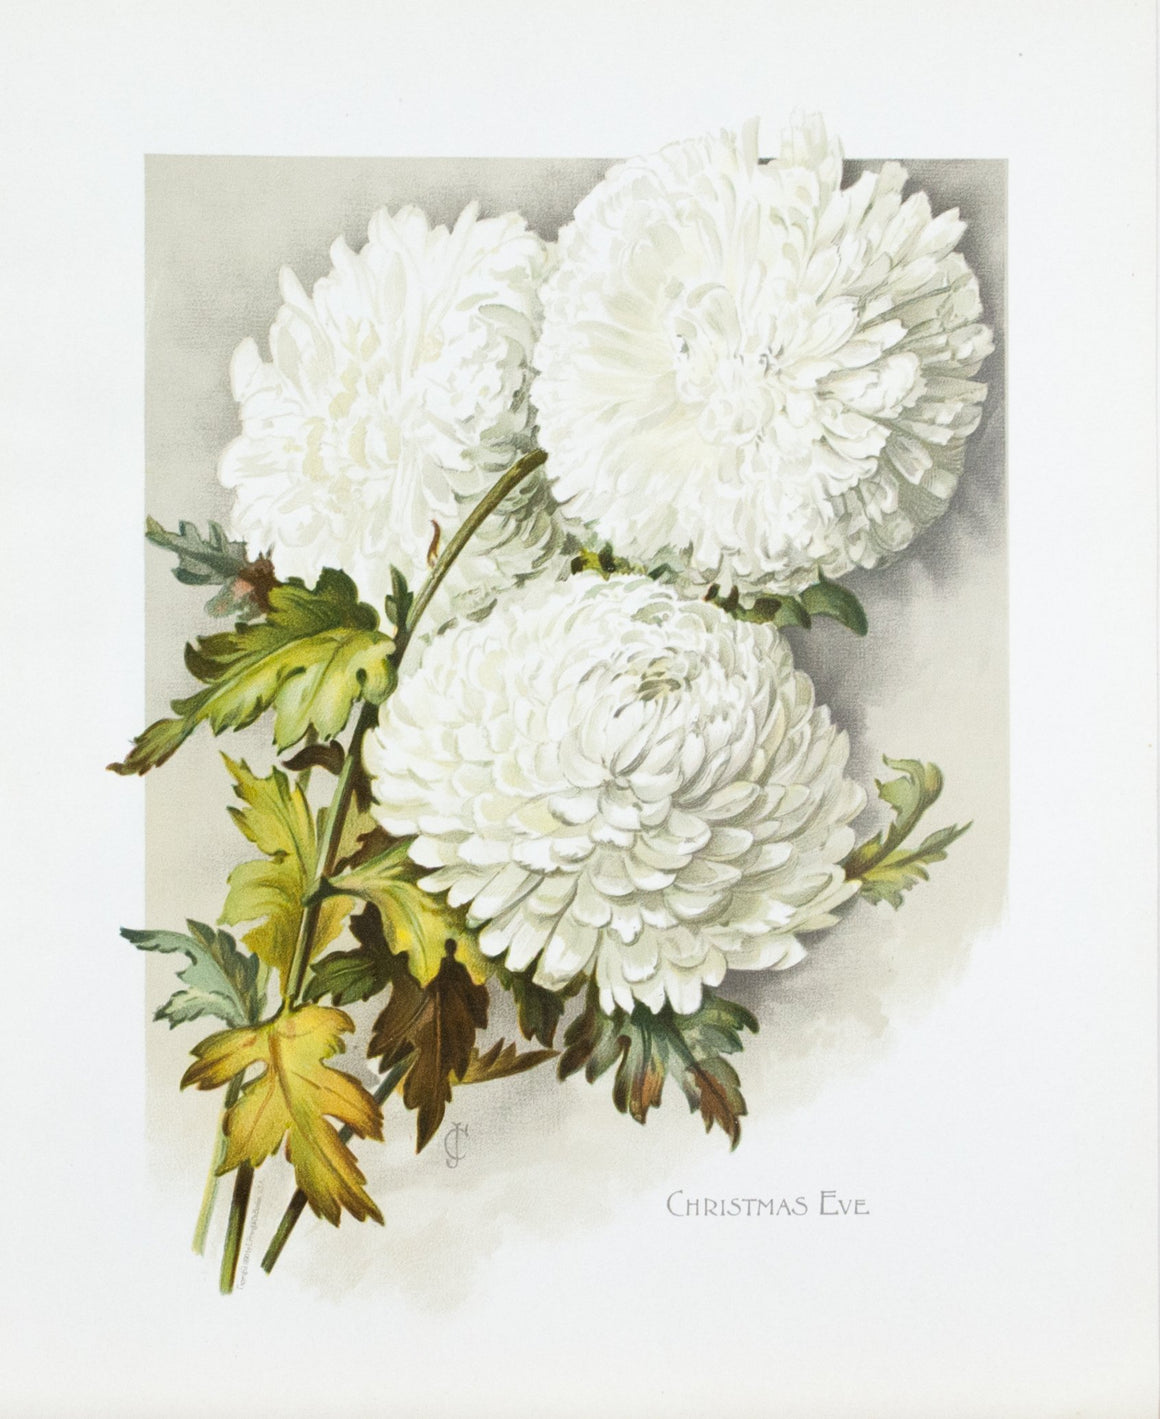 1890 Christmas Eve Chrysanthemum - Mathews